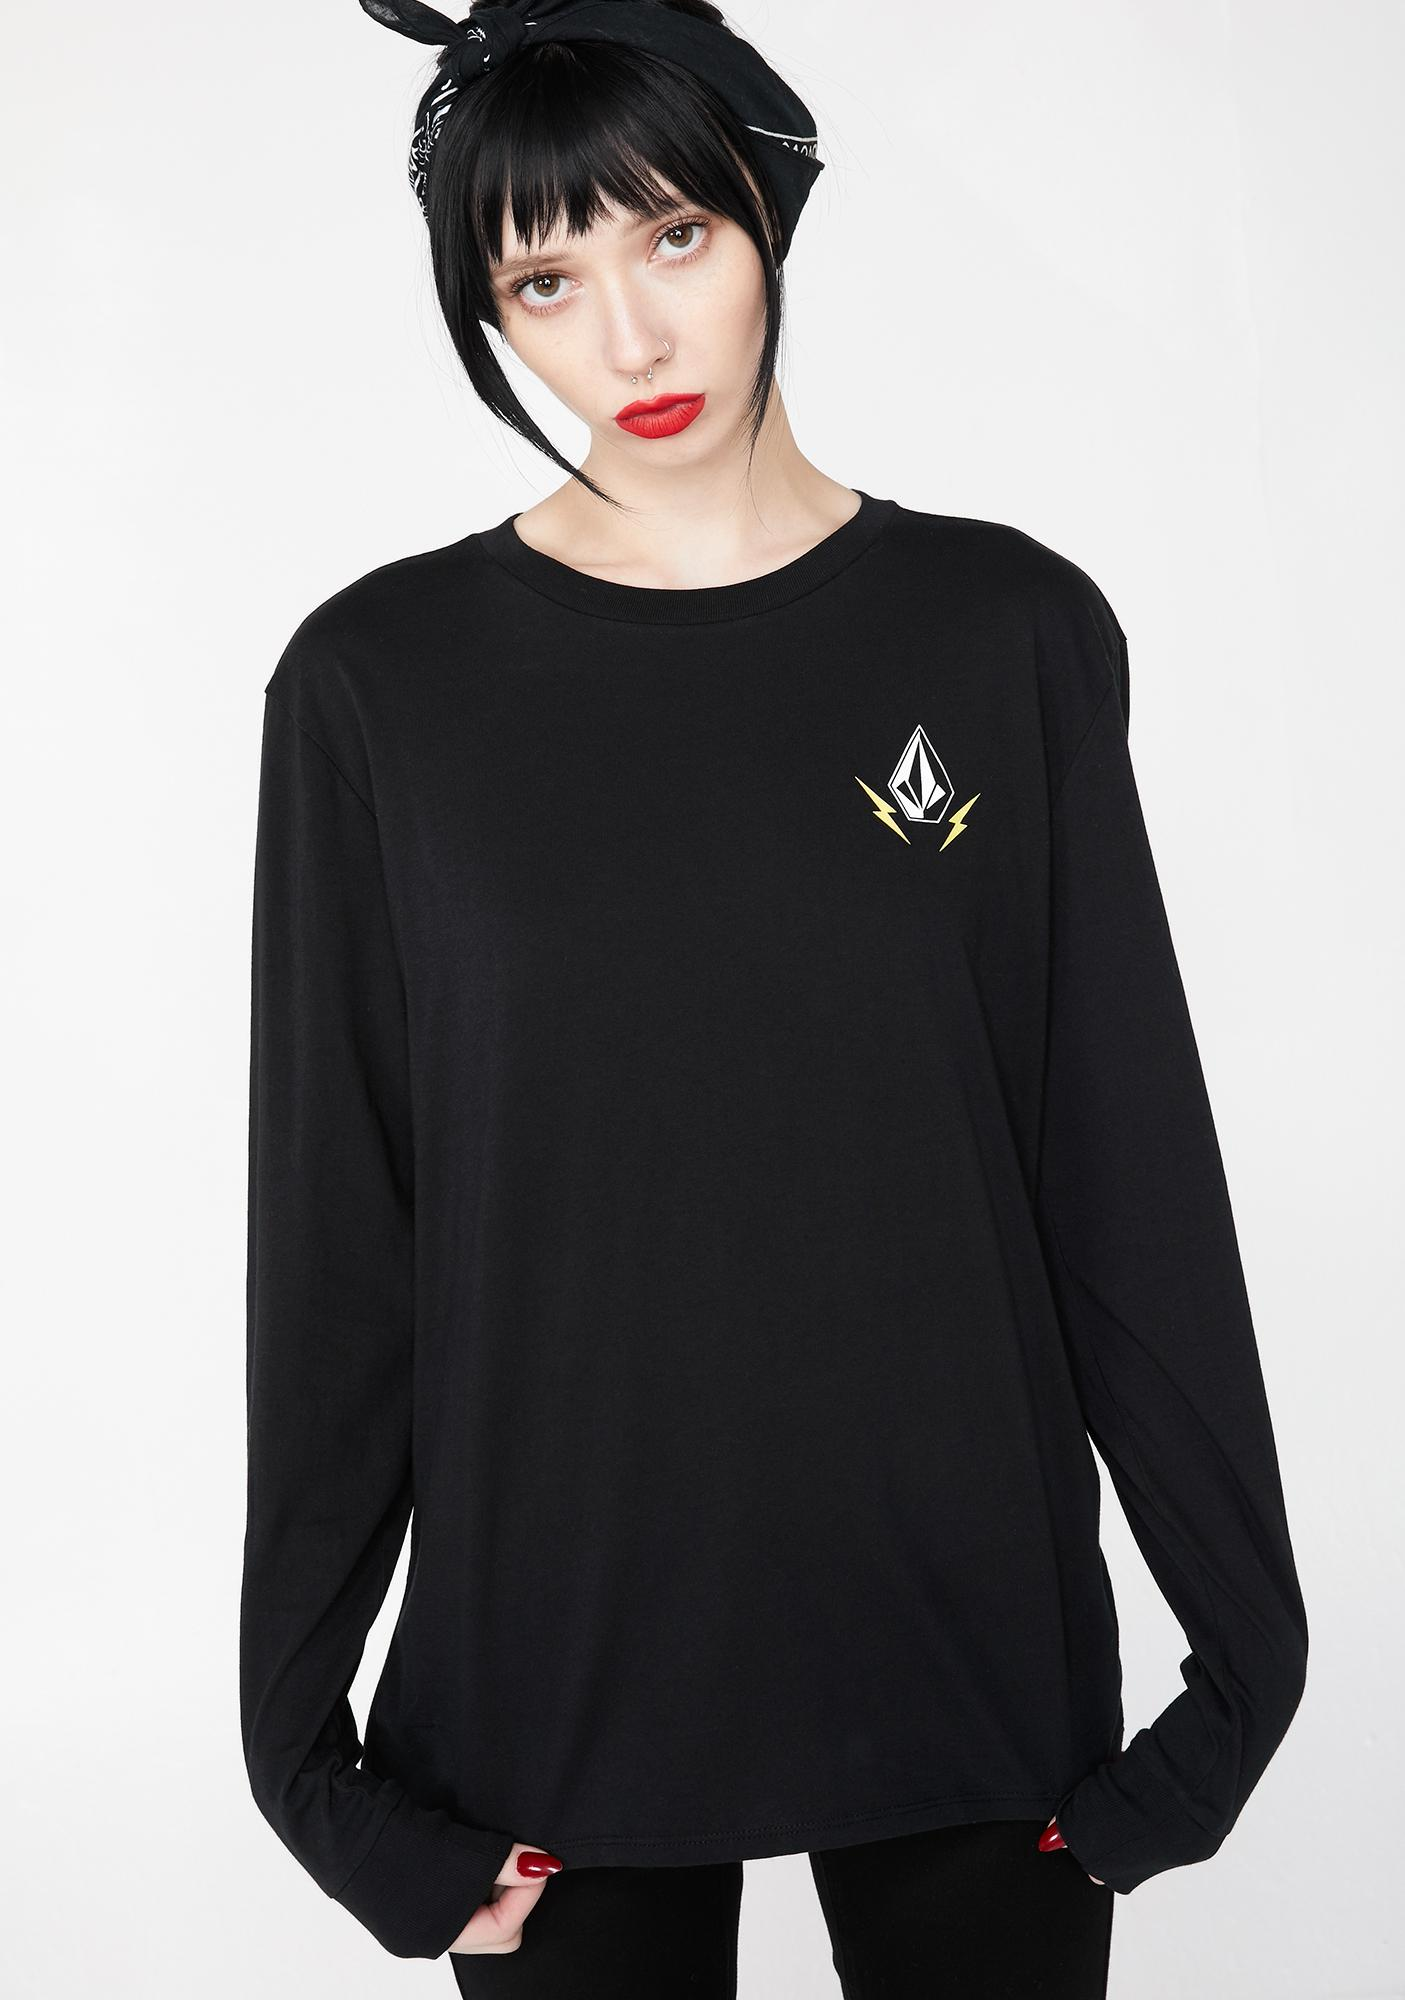 Volcom Vlcm 1991 Long Sleeve Tee